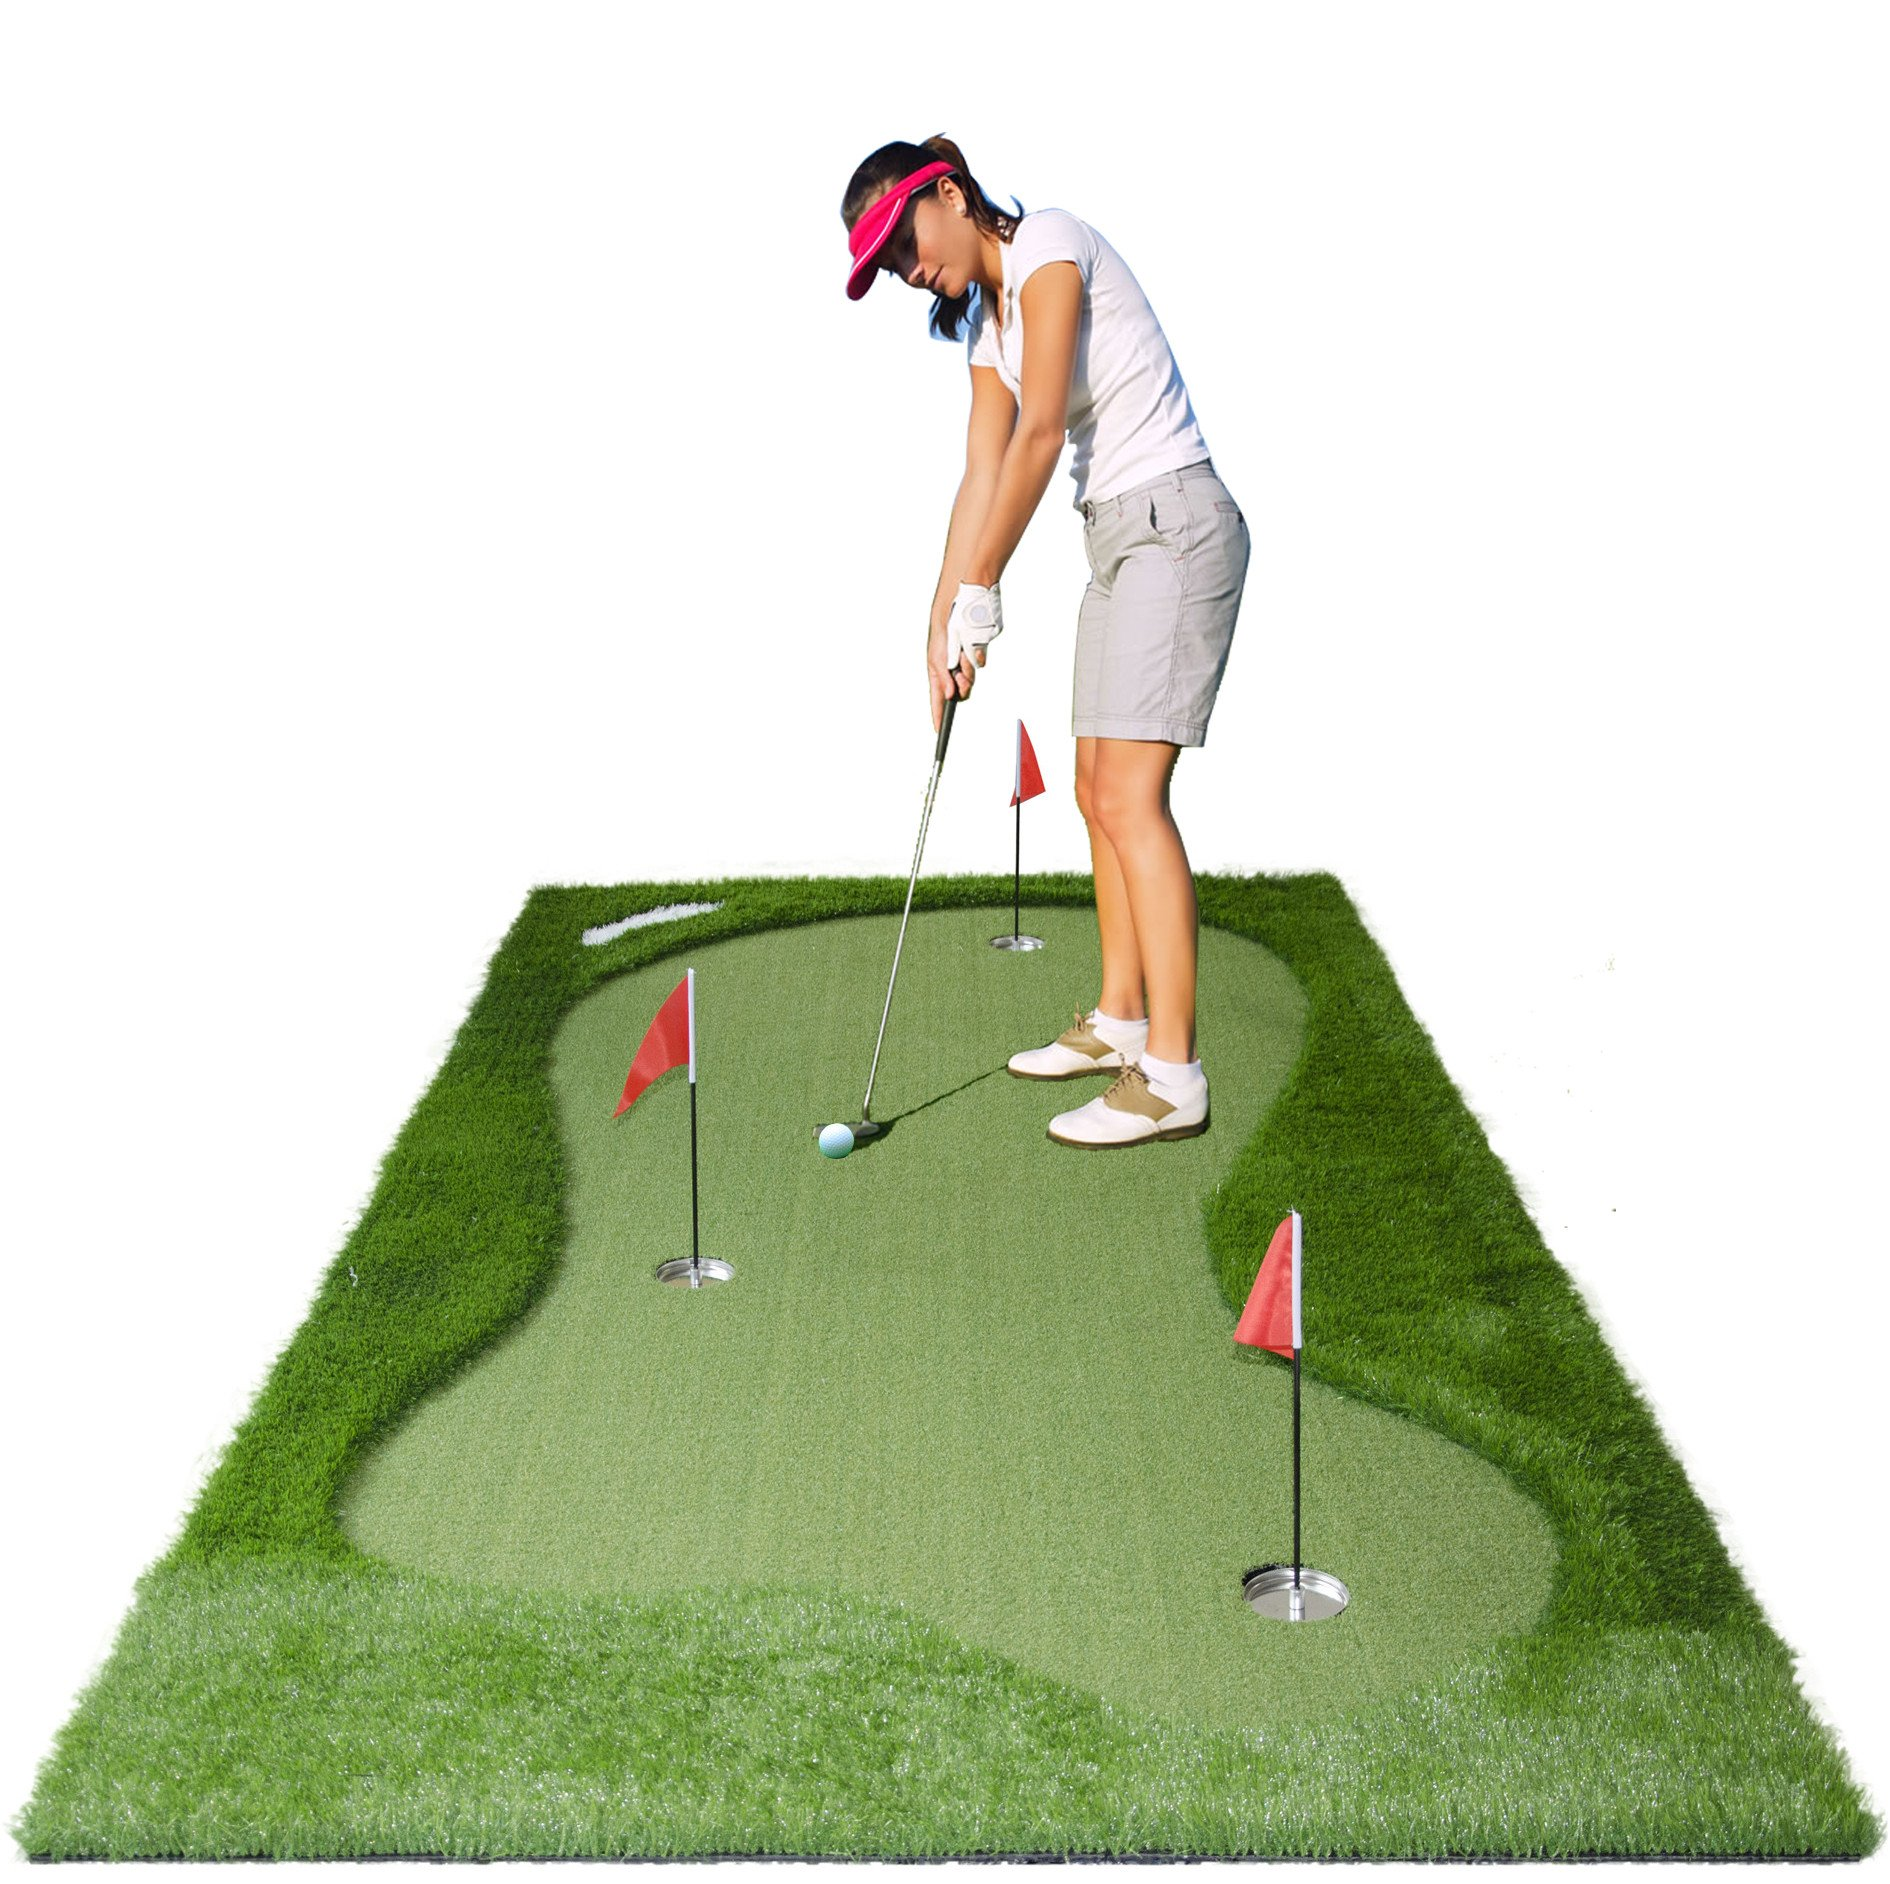 77tech Golf Putting Green System Professional Practice Large Indoor/Outdoor Challenging Putter Made of Waterproof Rubber Base Golf Training Mat Aid Equipment (5'x10' upgrade1)